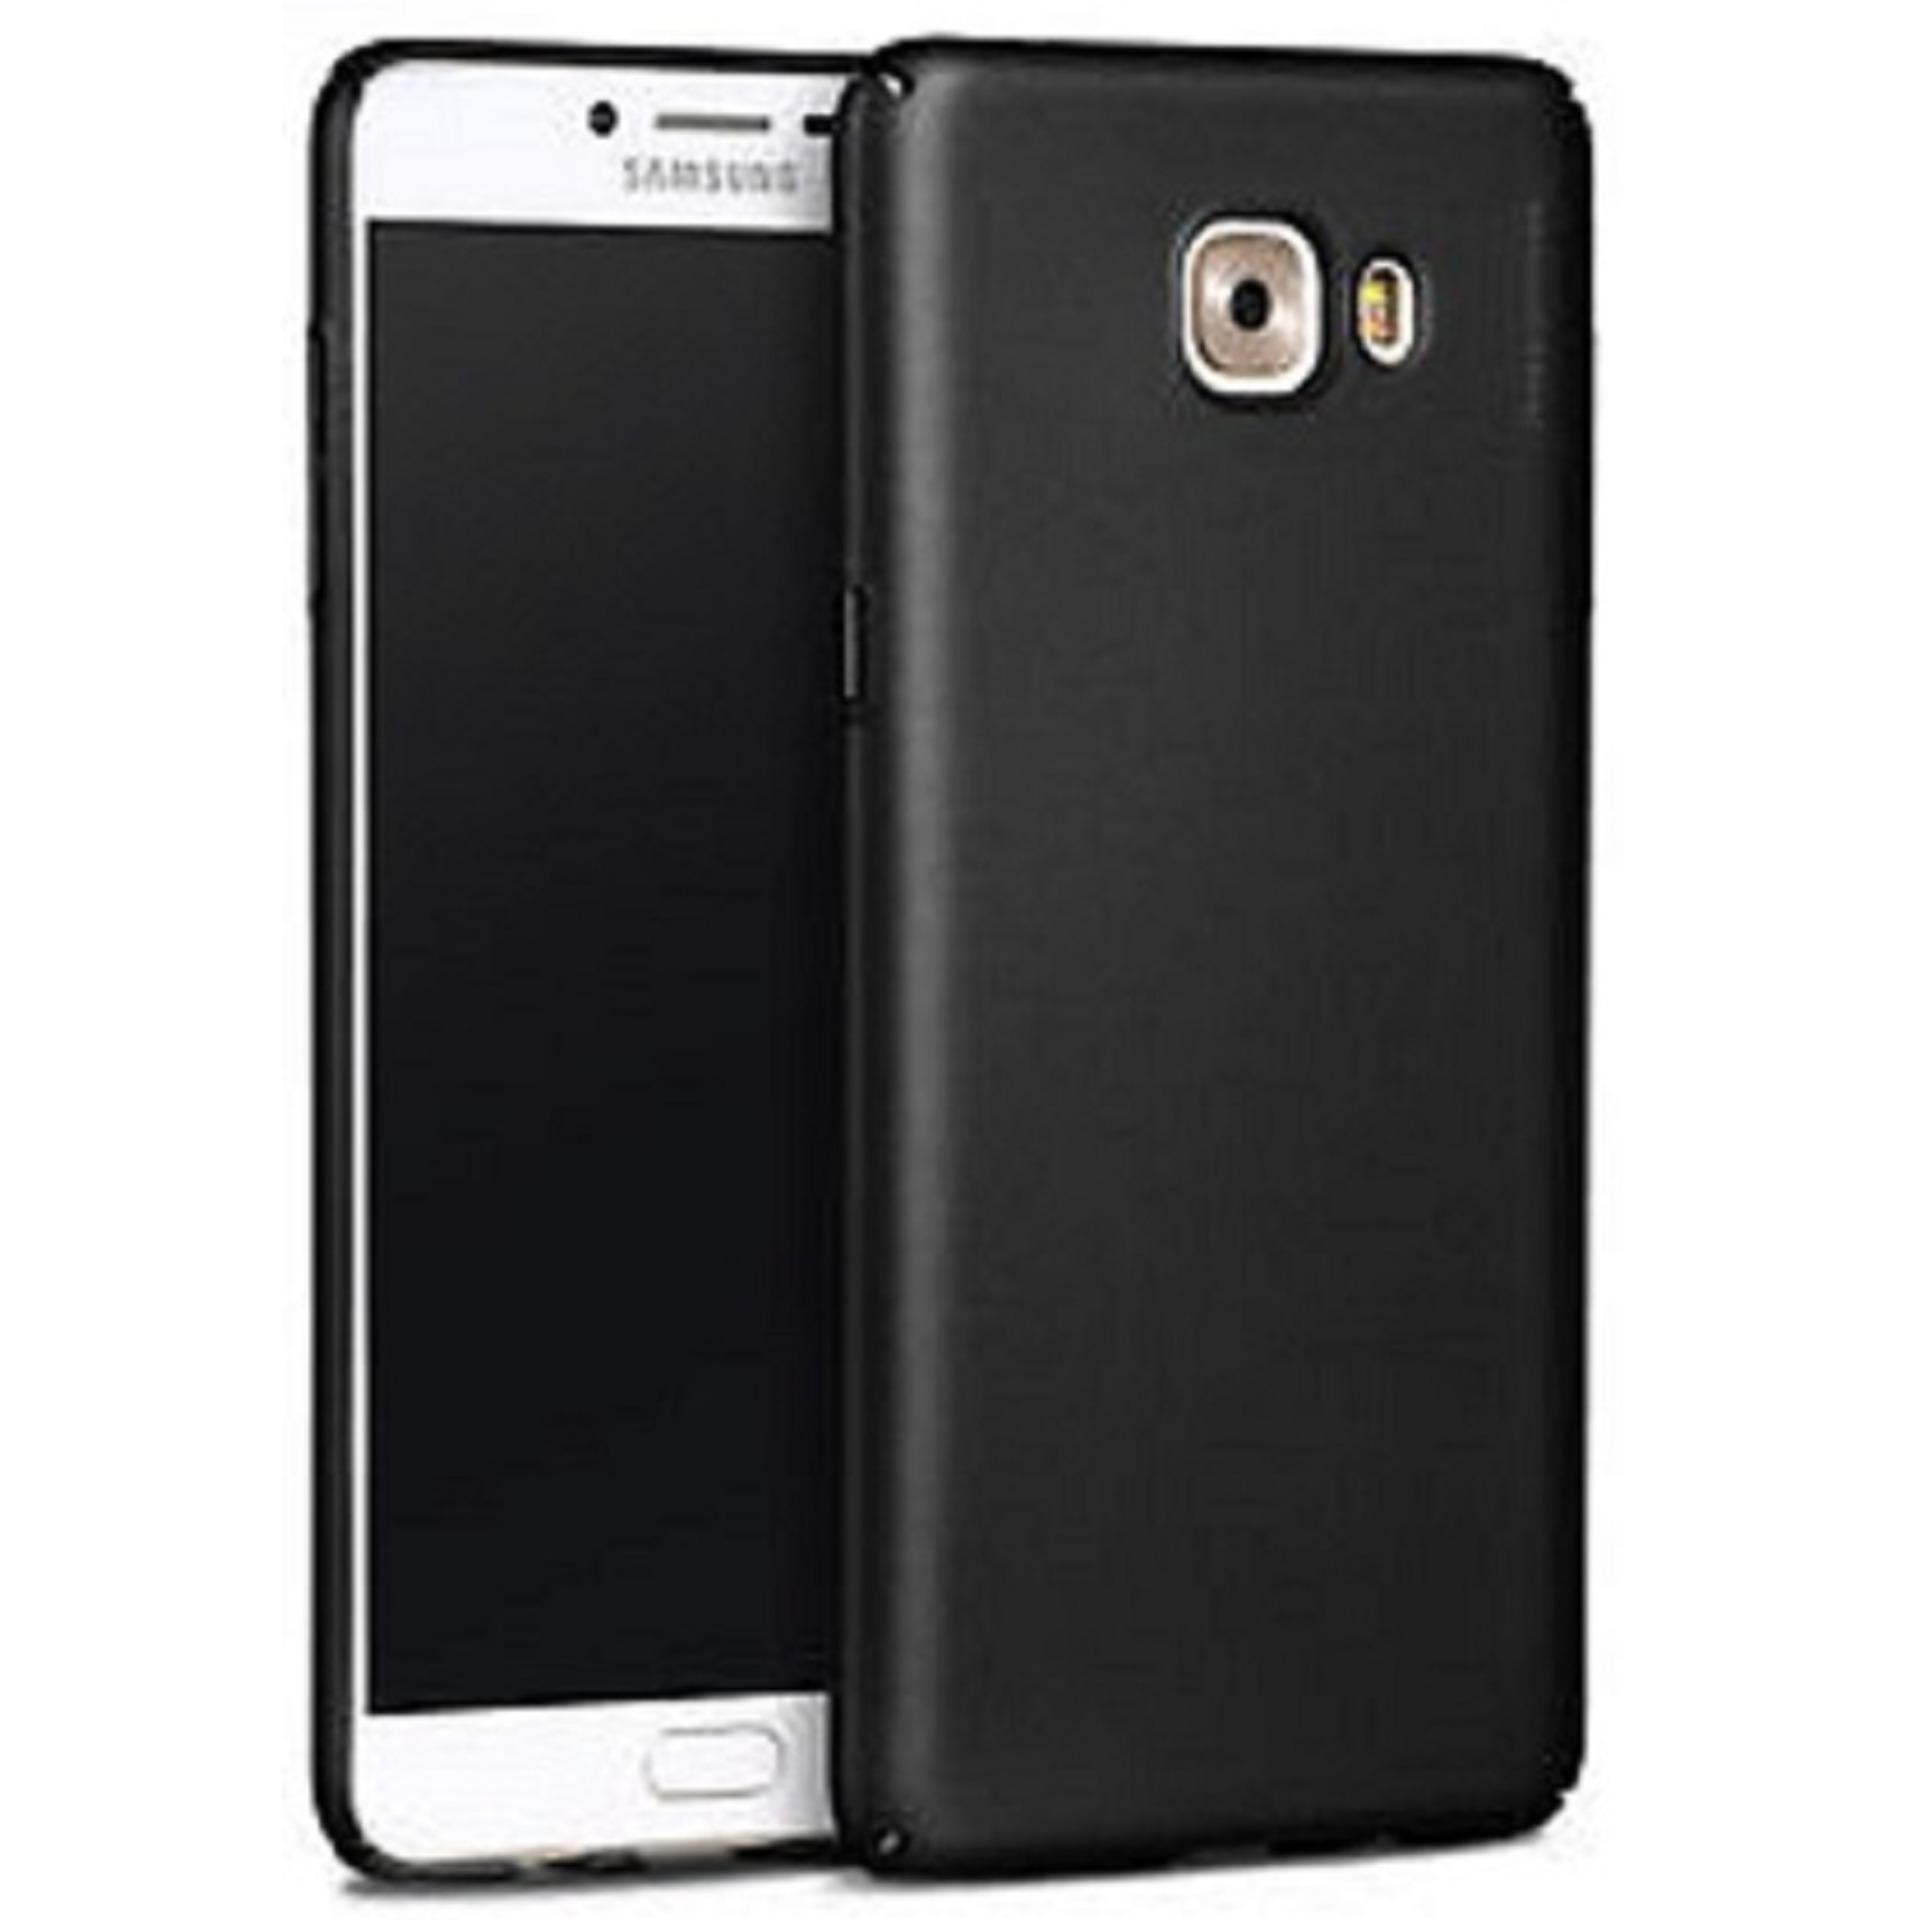 ... Anti Crack Premium. Source · DarkNight for Samsung Galaxy C7 / C7 Pro / 4G LTE / Duos | Slim Case